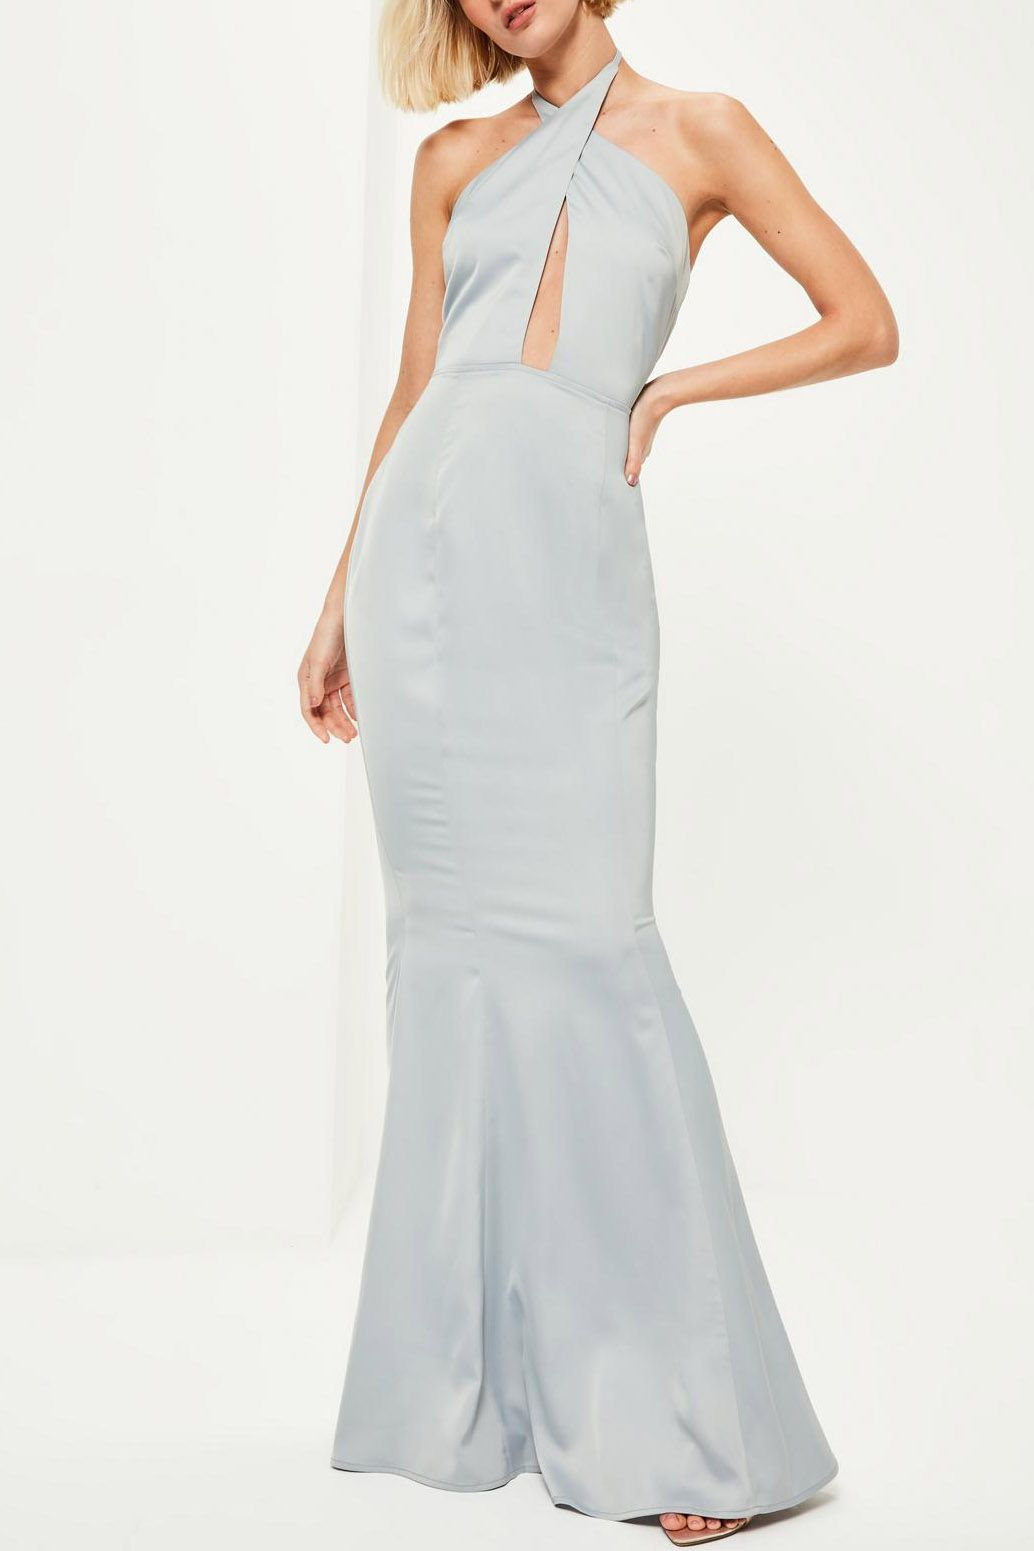 What to wear to any wedding with a dress code j pinterest